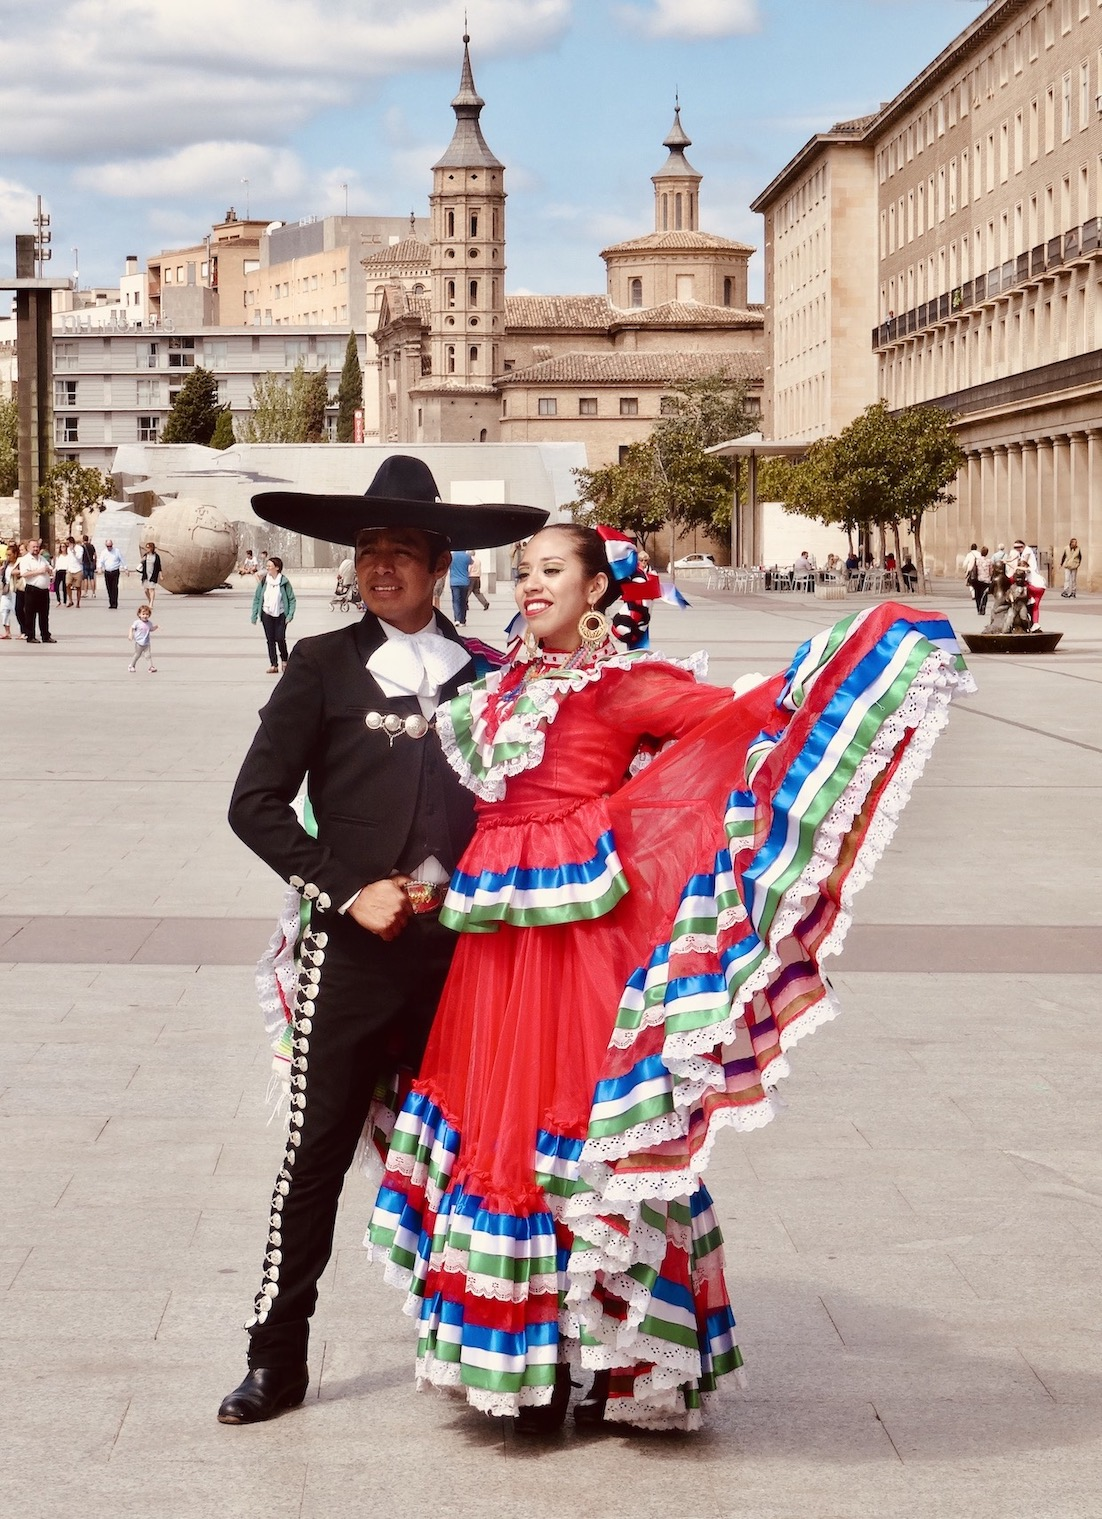 Flamenco dancers Zaragoza Spain.